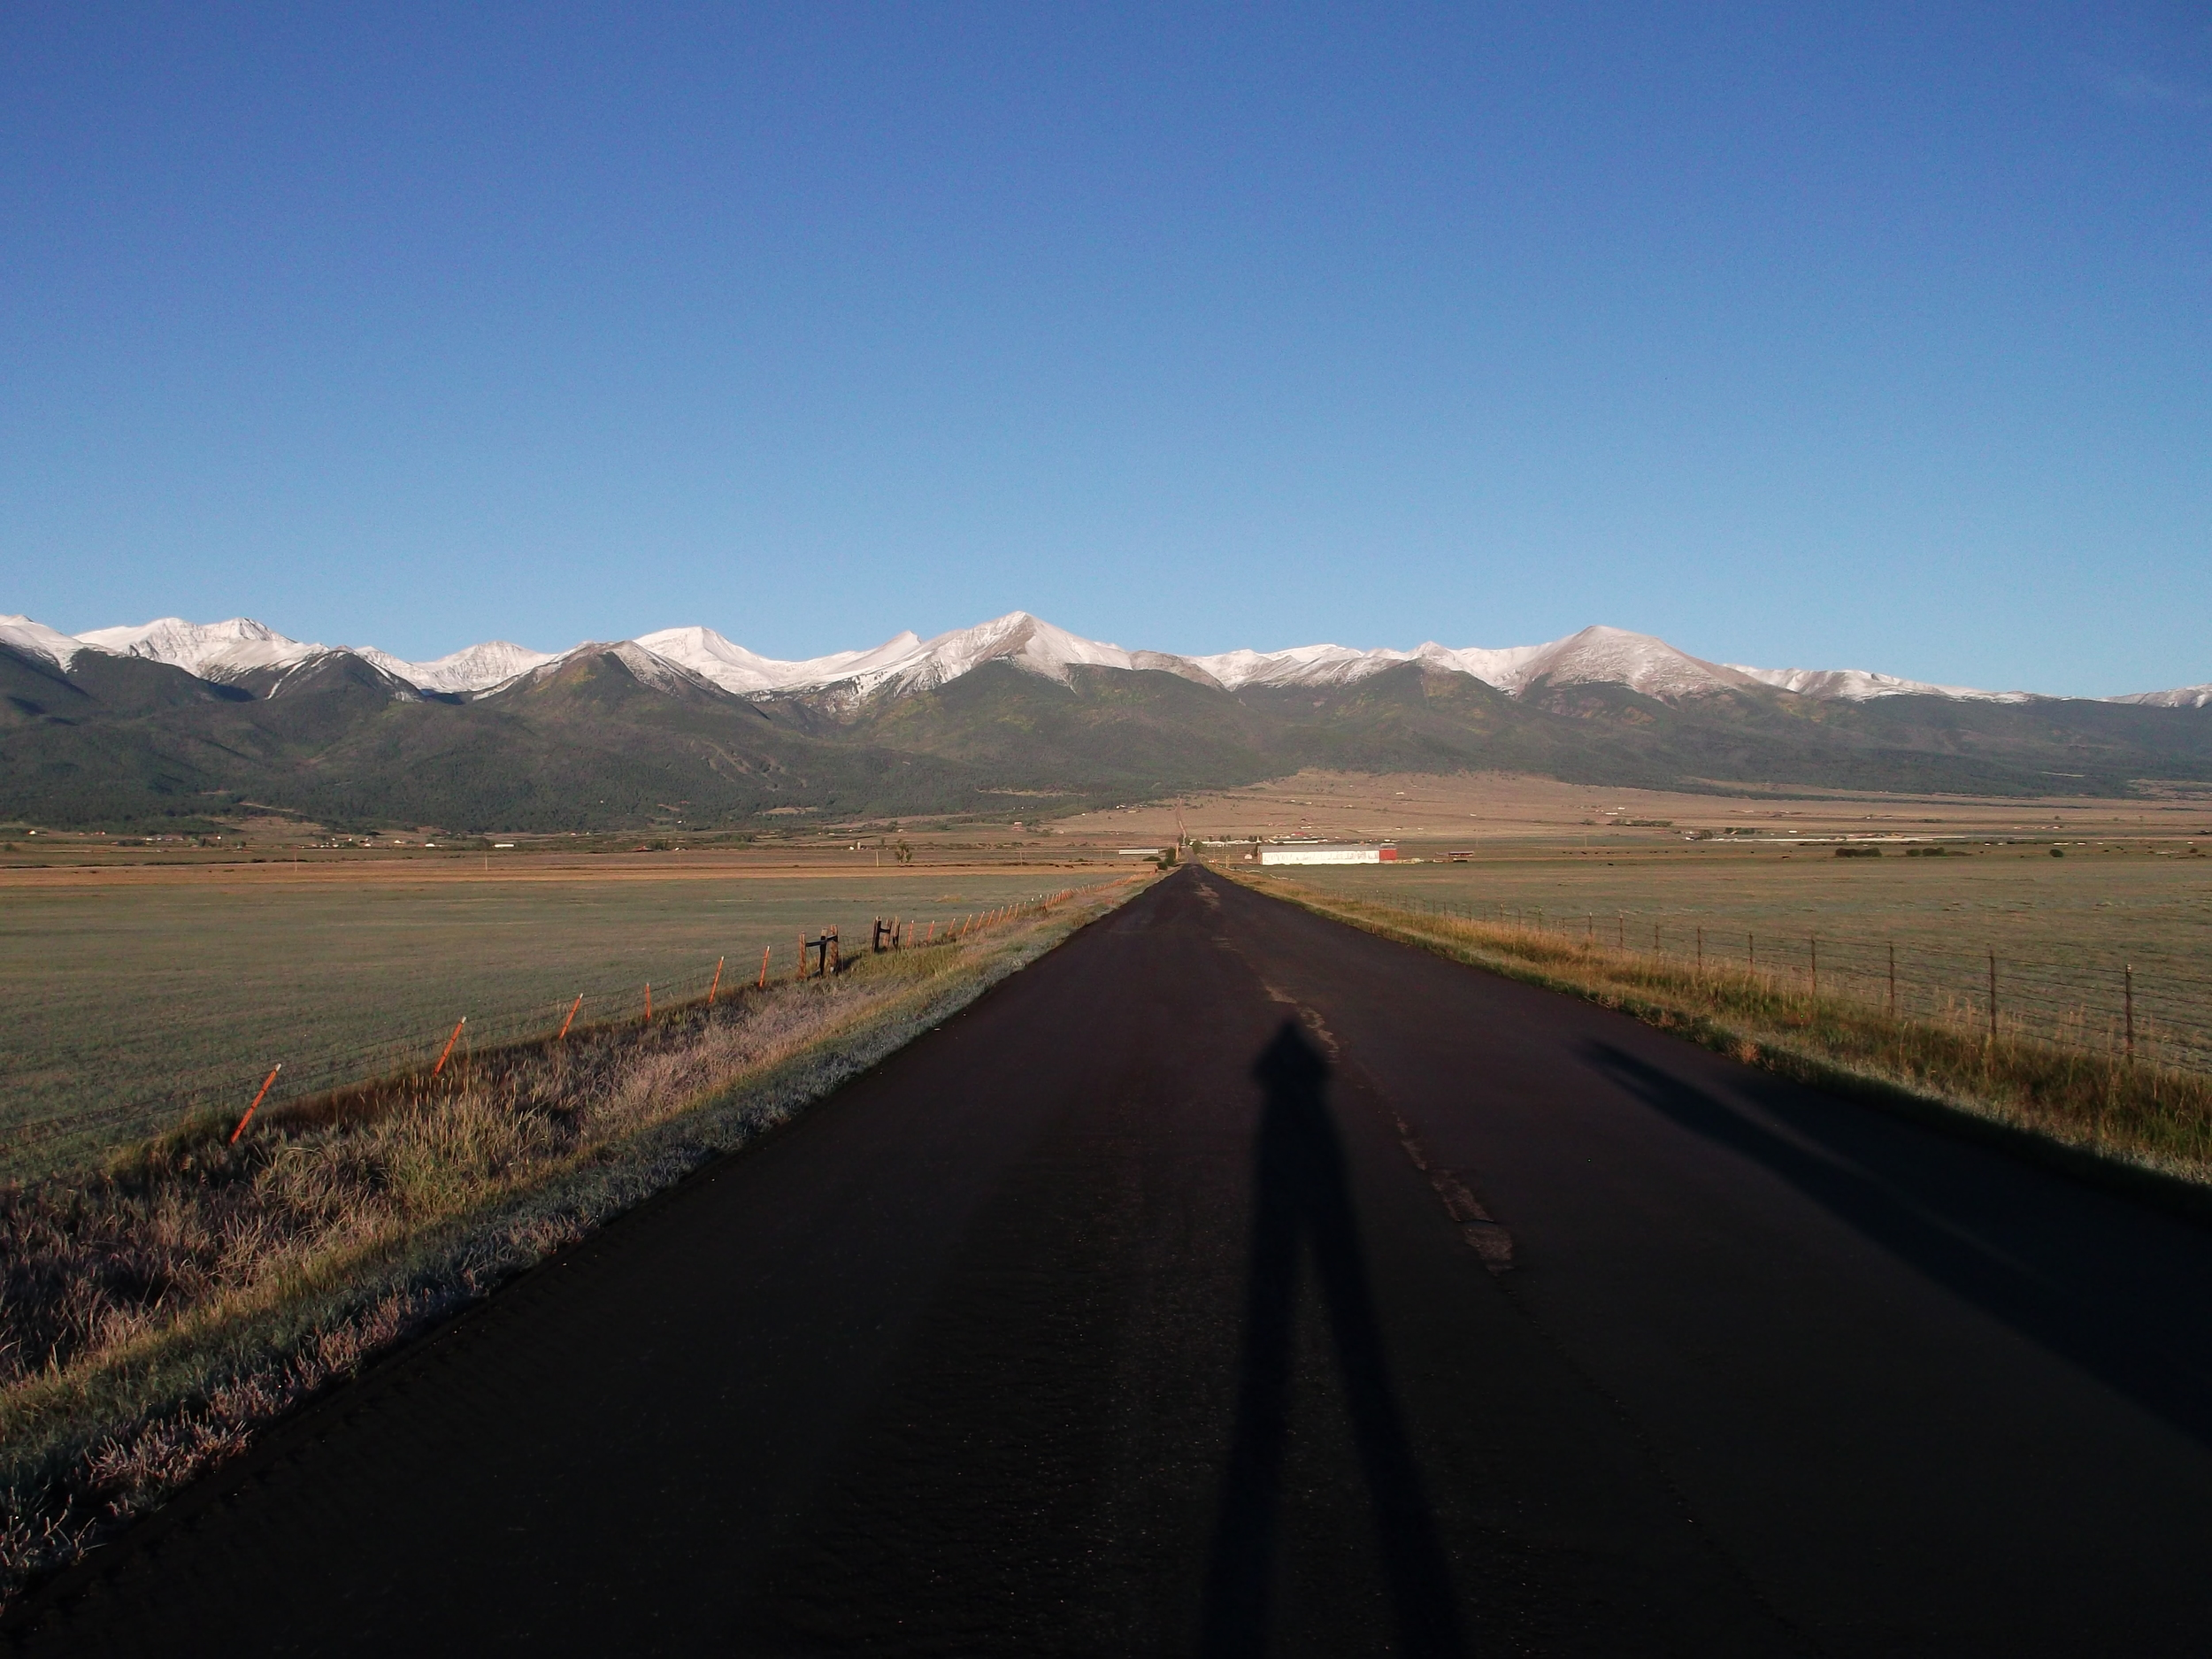 Casting a long shadow way out in the boondocks in Westcliffe, Colorado. (Small towns being another place I would not personally choose for study locations)